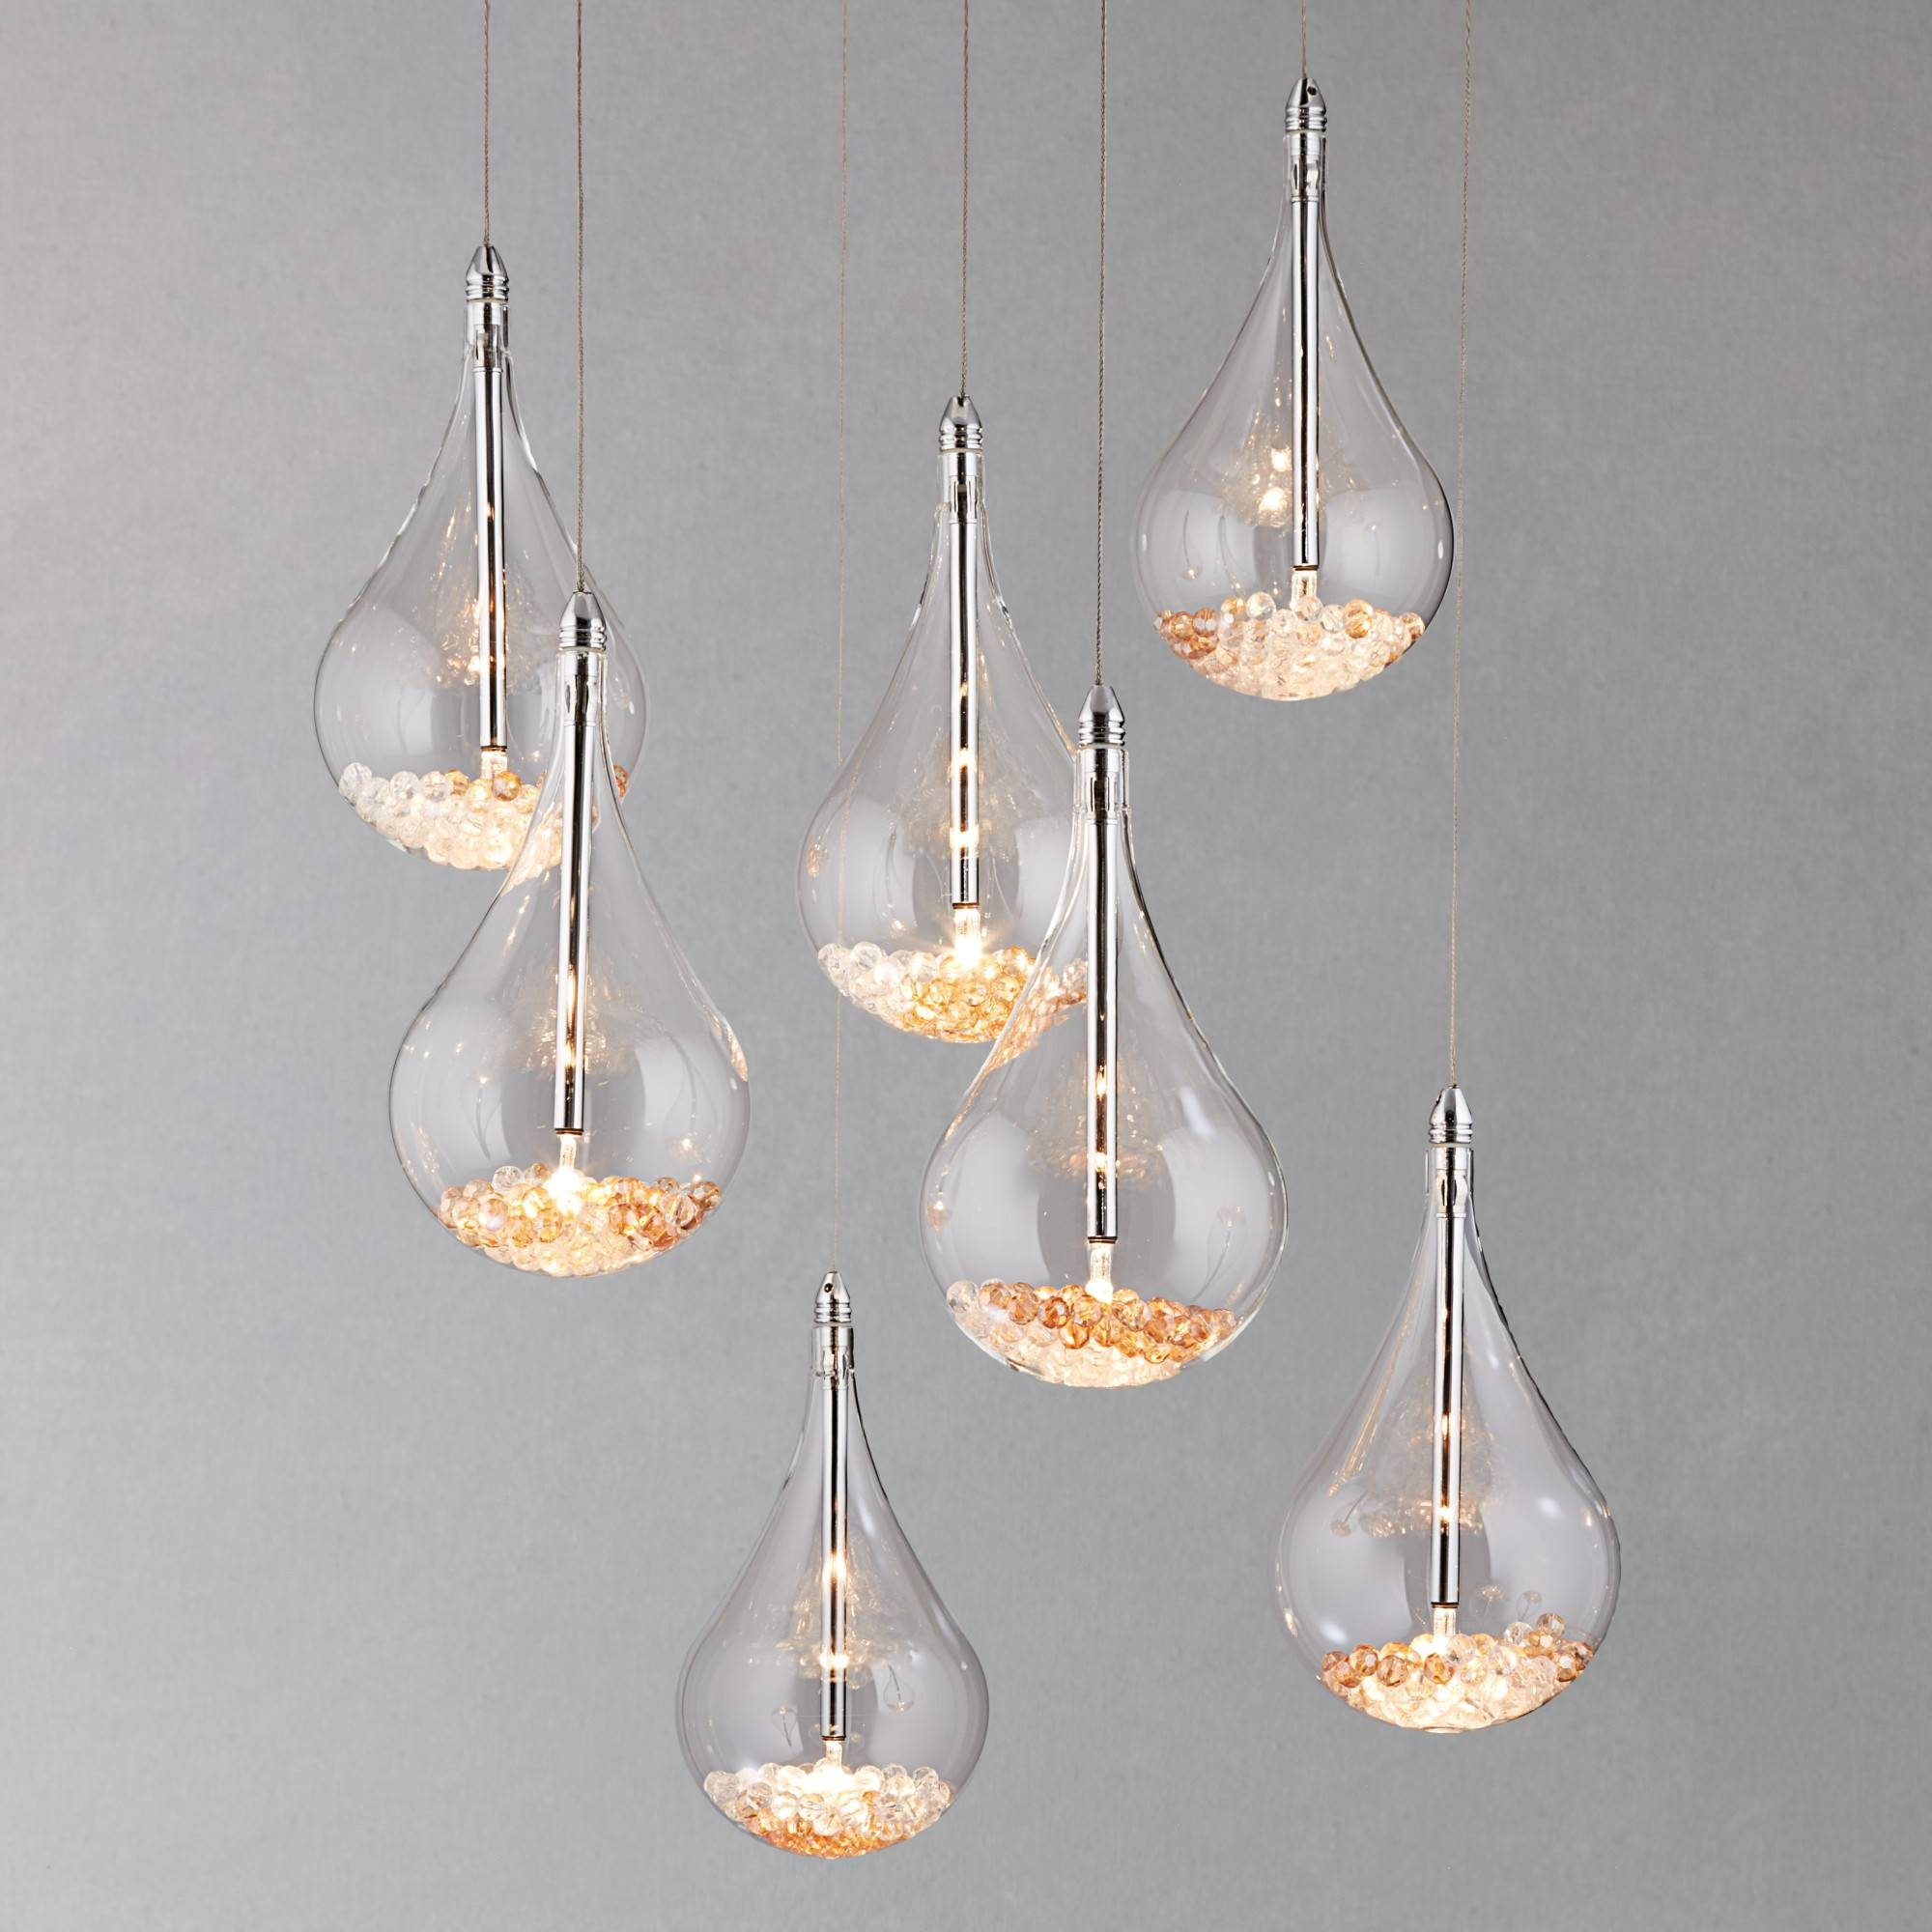 Cluster Lights - Our Pick Of The Best | Ideal Home pertaining to John Lewis Ceiling Pendant Lights (Image 2 of 15)